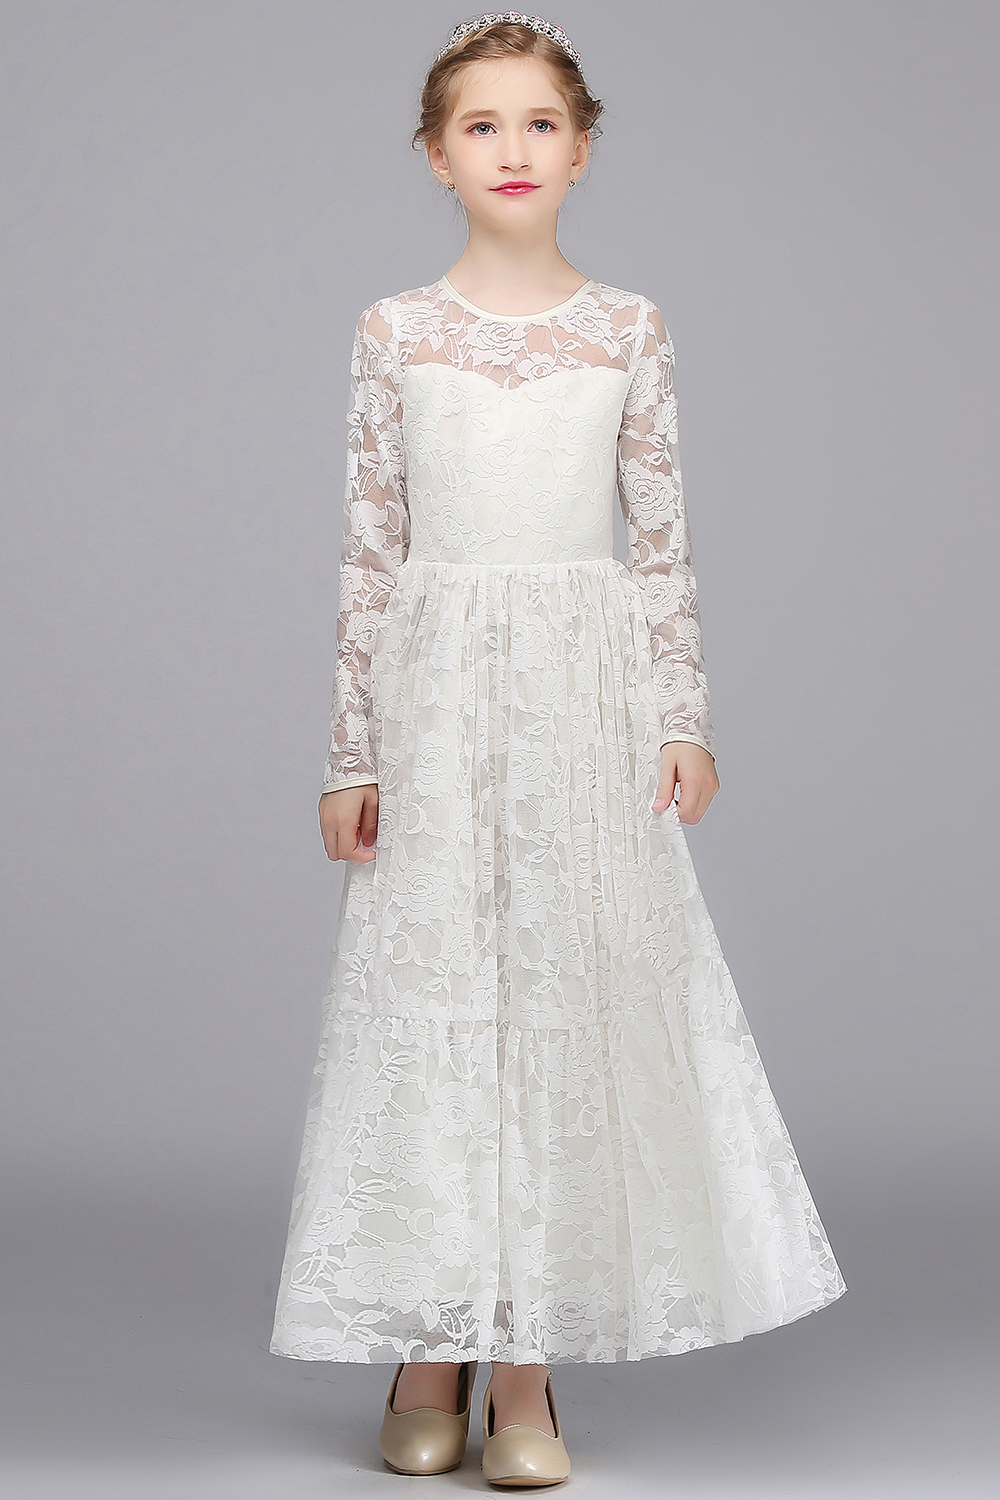 White Flower Girls Dresses For Wedding Sleeveless Lace First Communion Dresses Kids Evening Gowns Tulle Mother Daughter Dresses new white ivory flower girl dresses for wedding 3d flowers puffy tulle with big bow girls first communion gowns